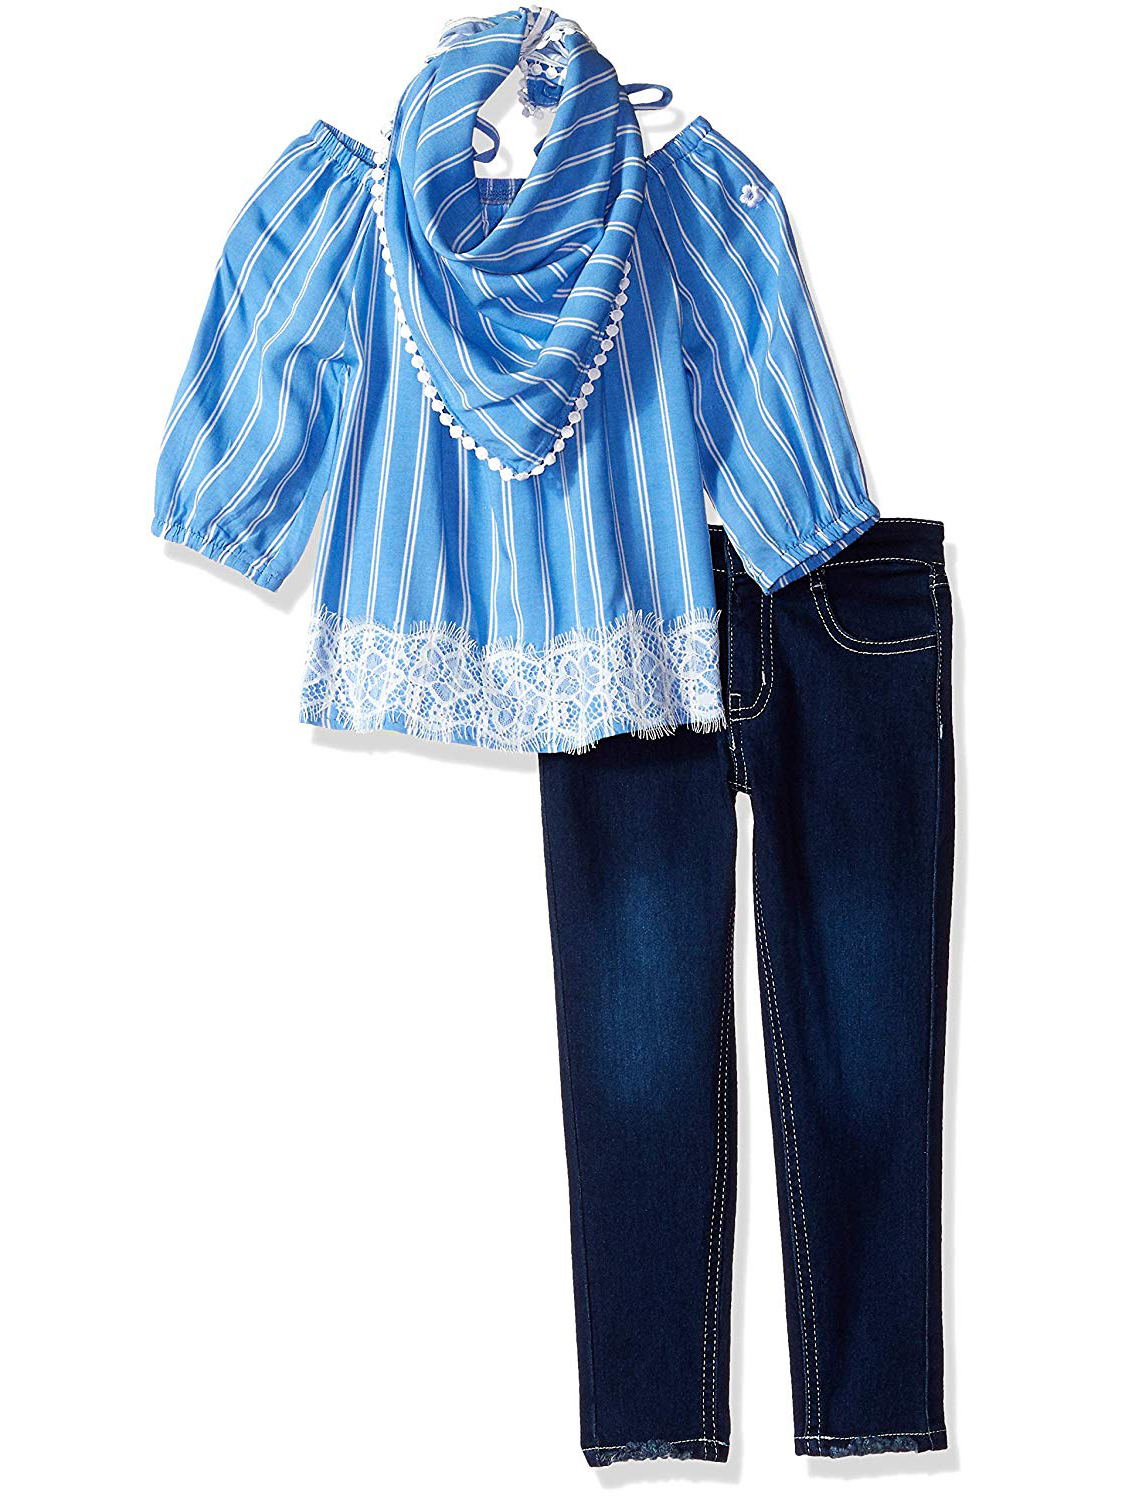 Bell Sleeve Lace Top and Jeans, 2-Piece Outfit Set (Little Girls & Big Girls)